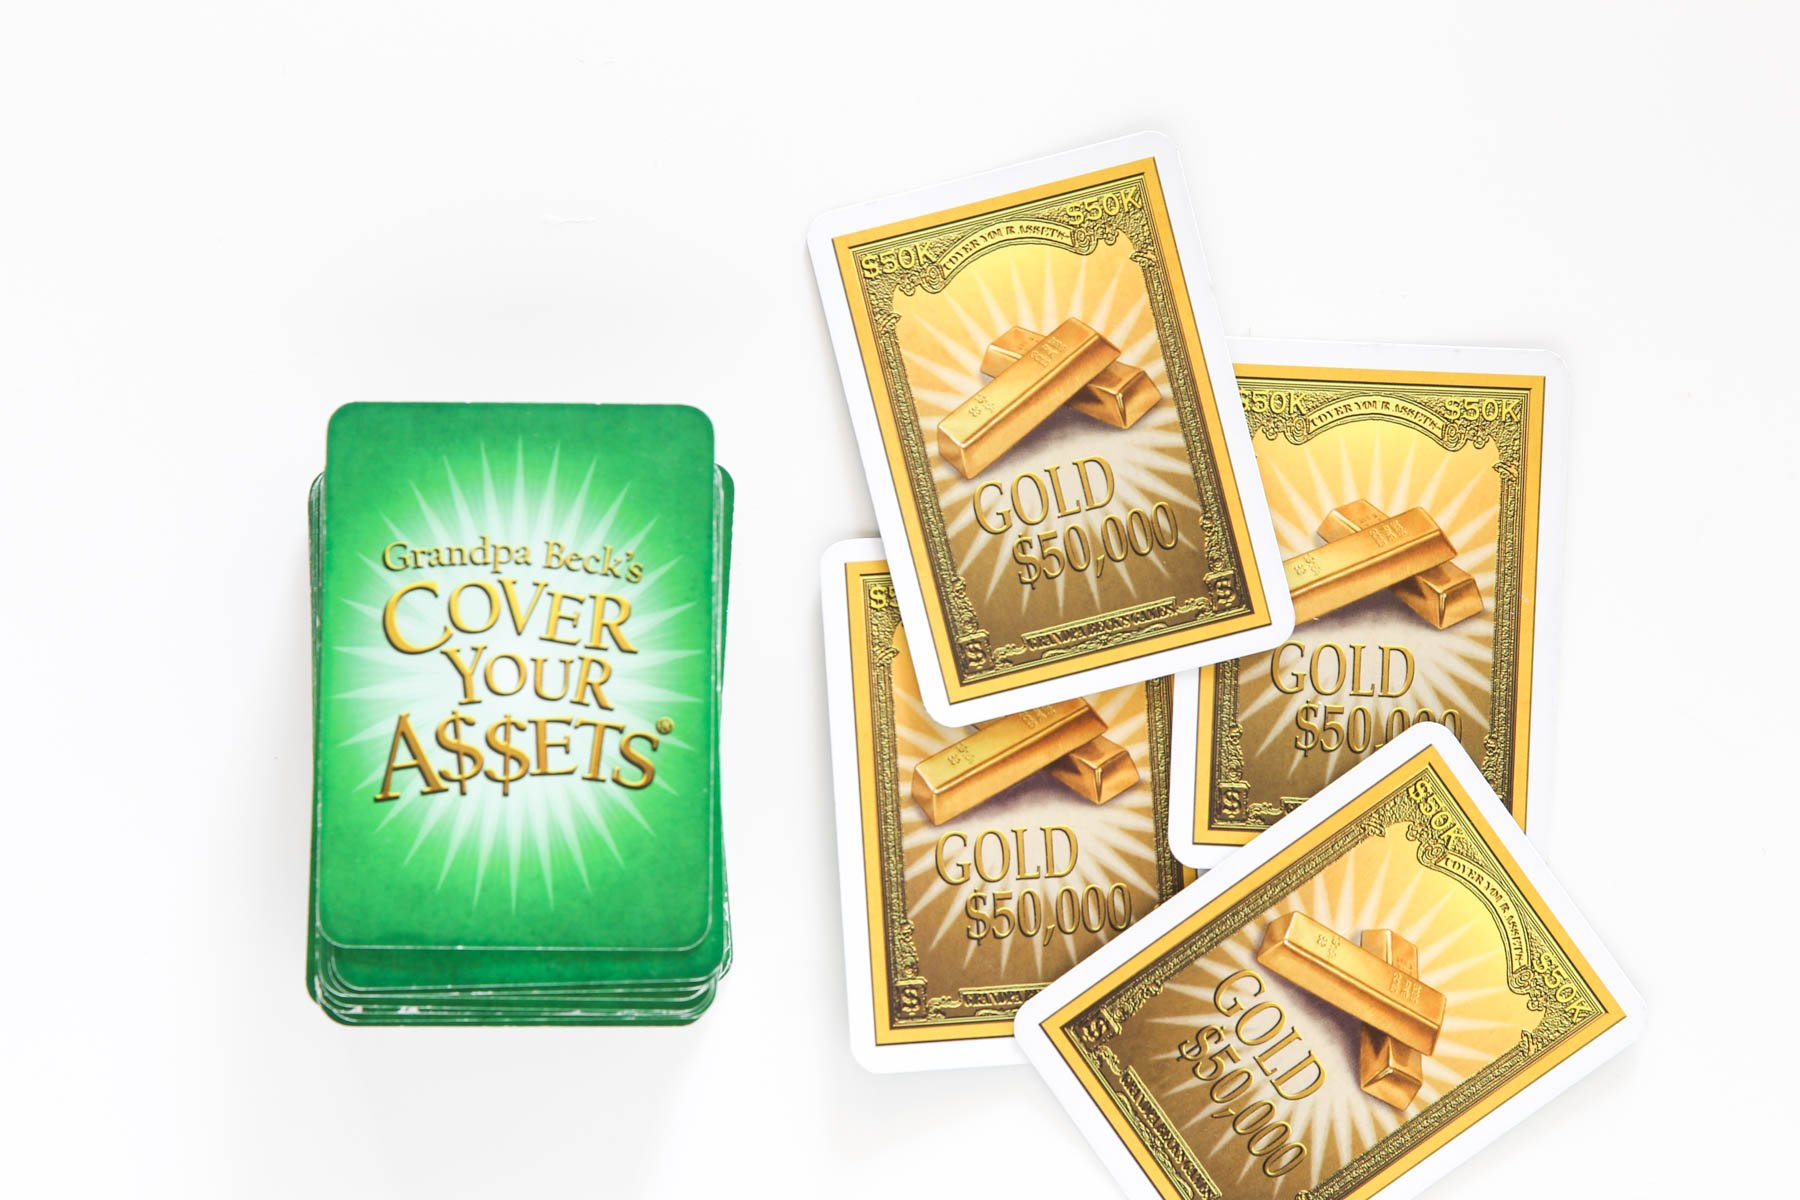 Gold Wild Cards from Cover Your Assets Game - our family's favorite game via @PagingSupermom